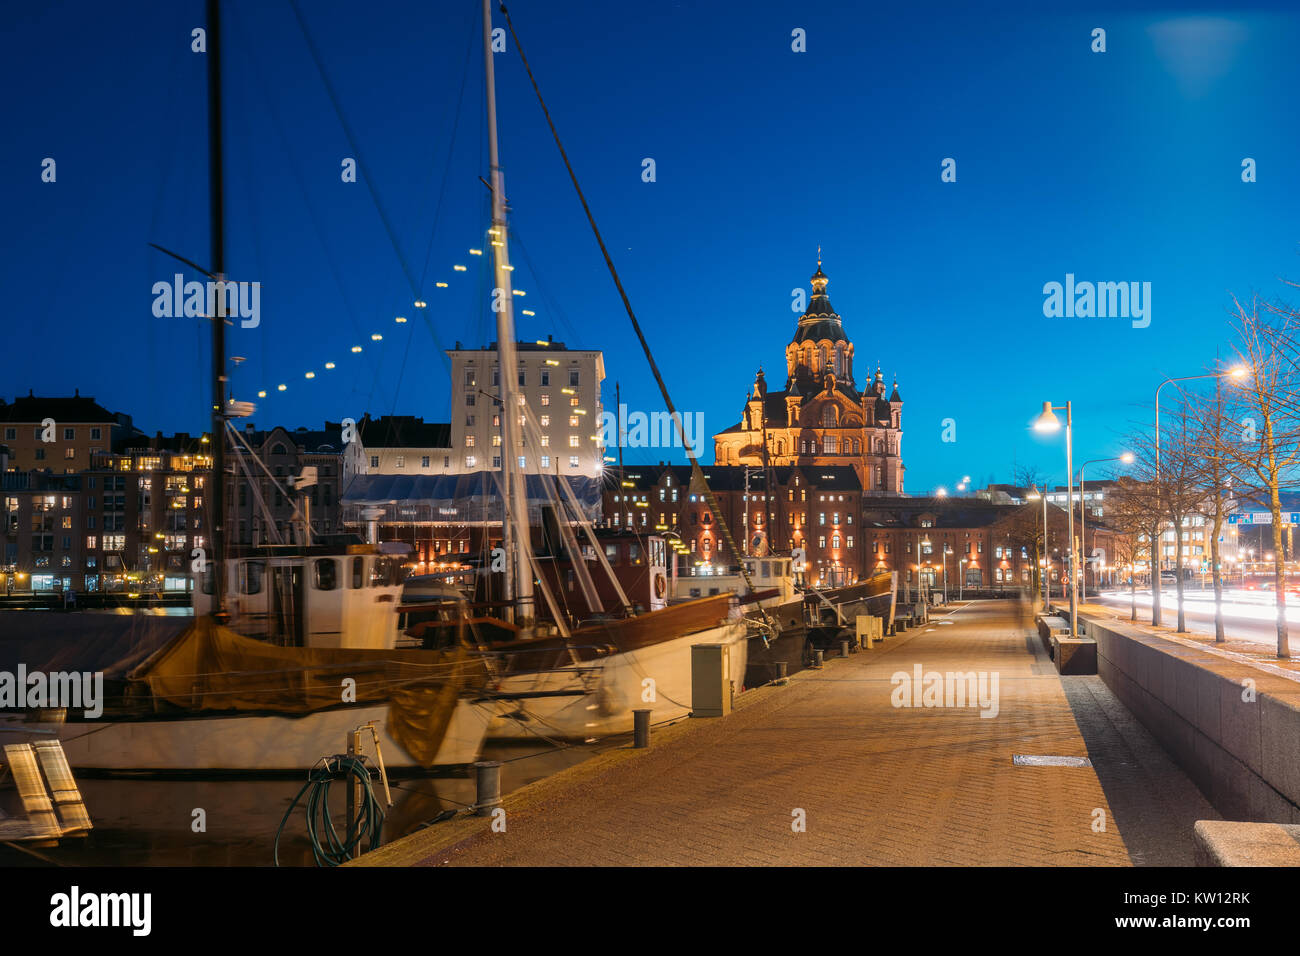 Helsinki, Finland. Pier With Boats, Pohjoisranta Street And View Of Uspenski Cathedral In Evening Night Illuminations. - Stock Image